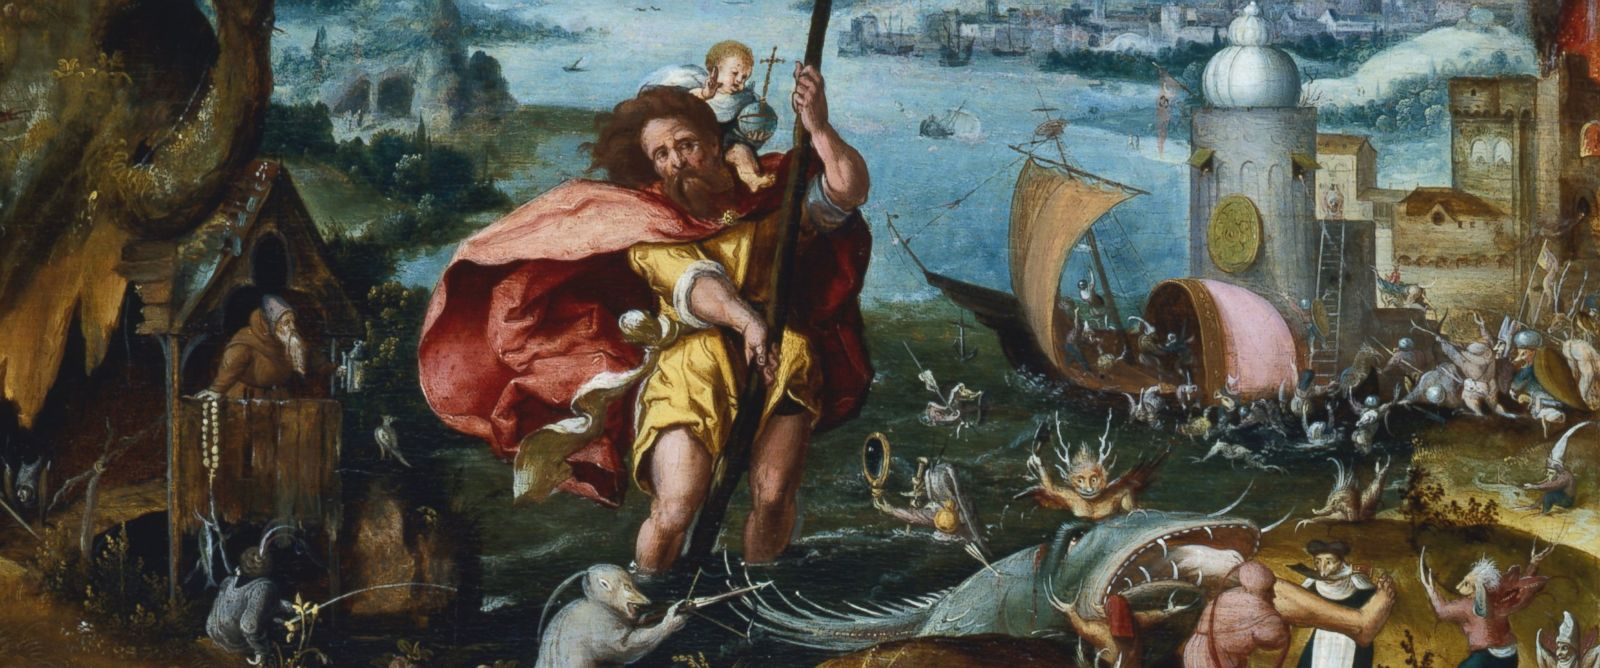 PHOTO: Saint Christopher crosses a river holding an infant Jesus Christ on his back